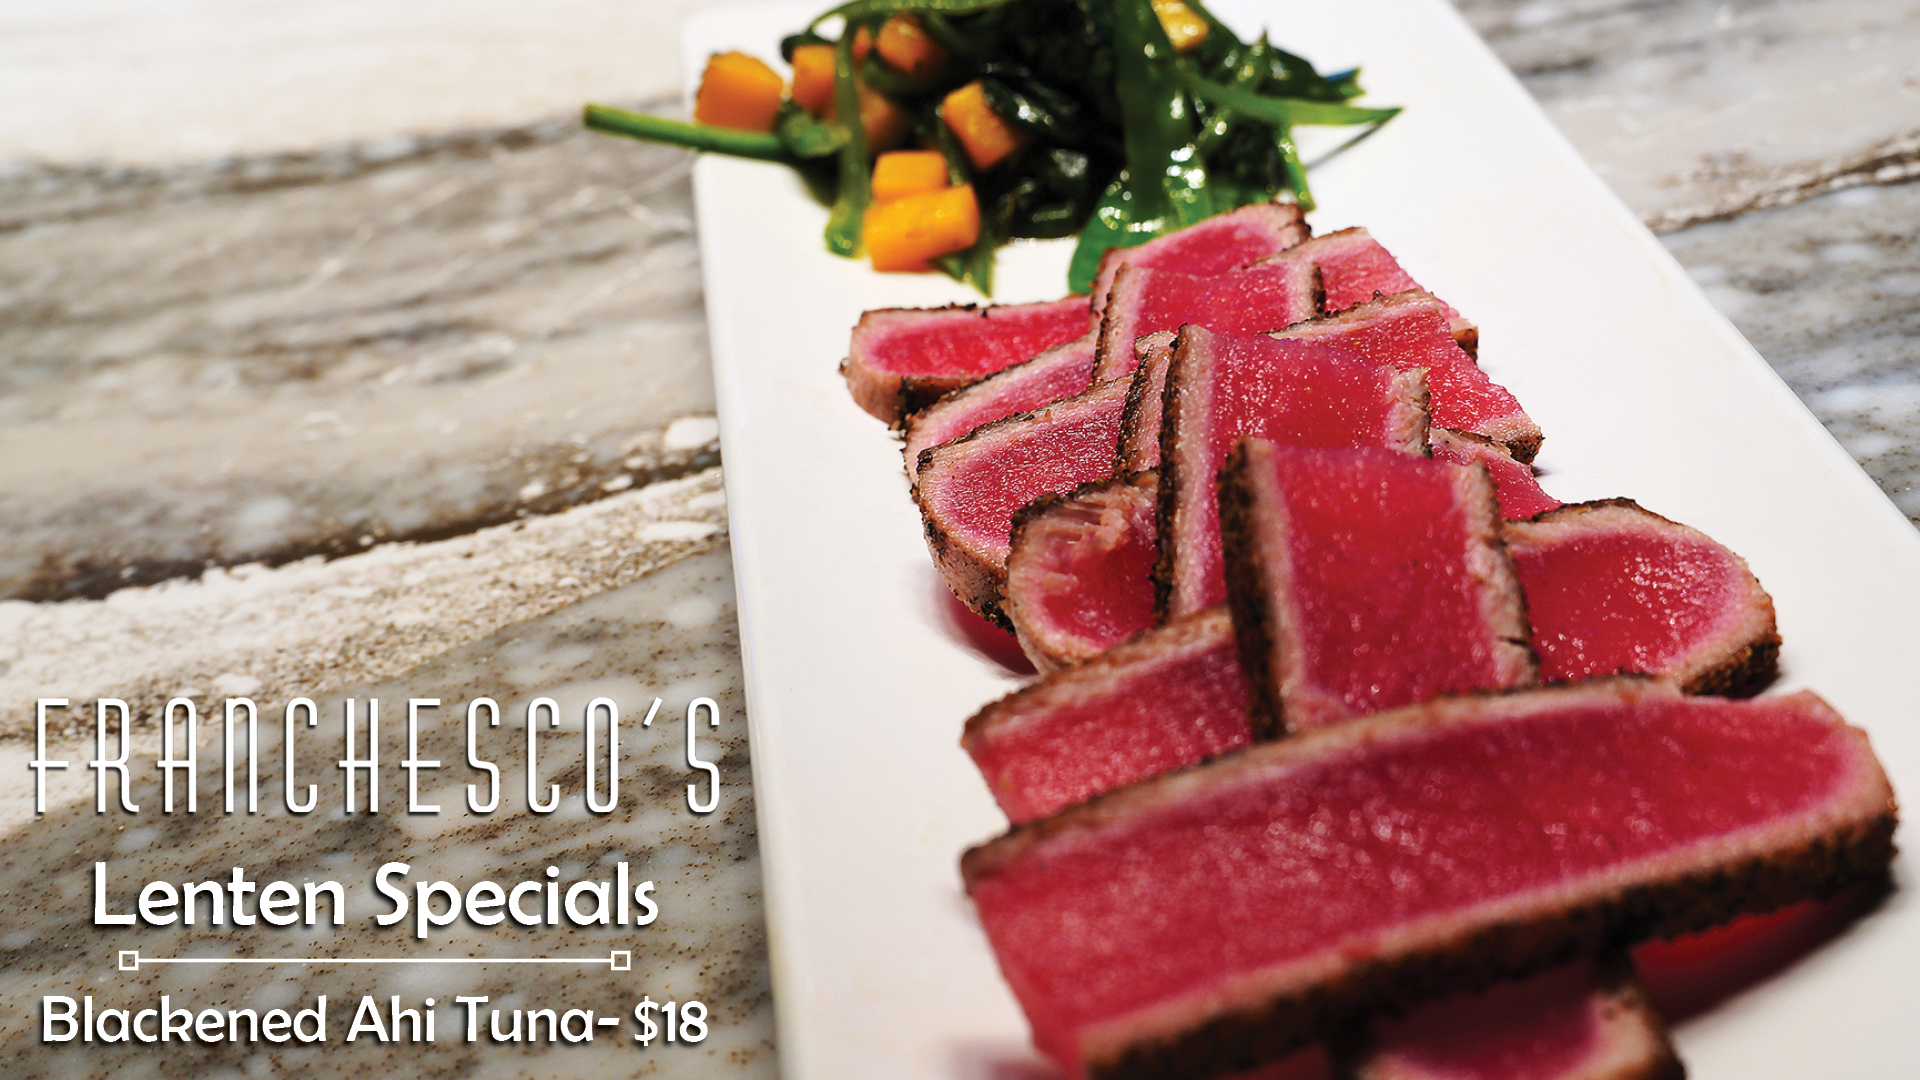 Blackened Ahi Tuna- Now only $18